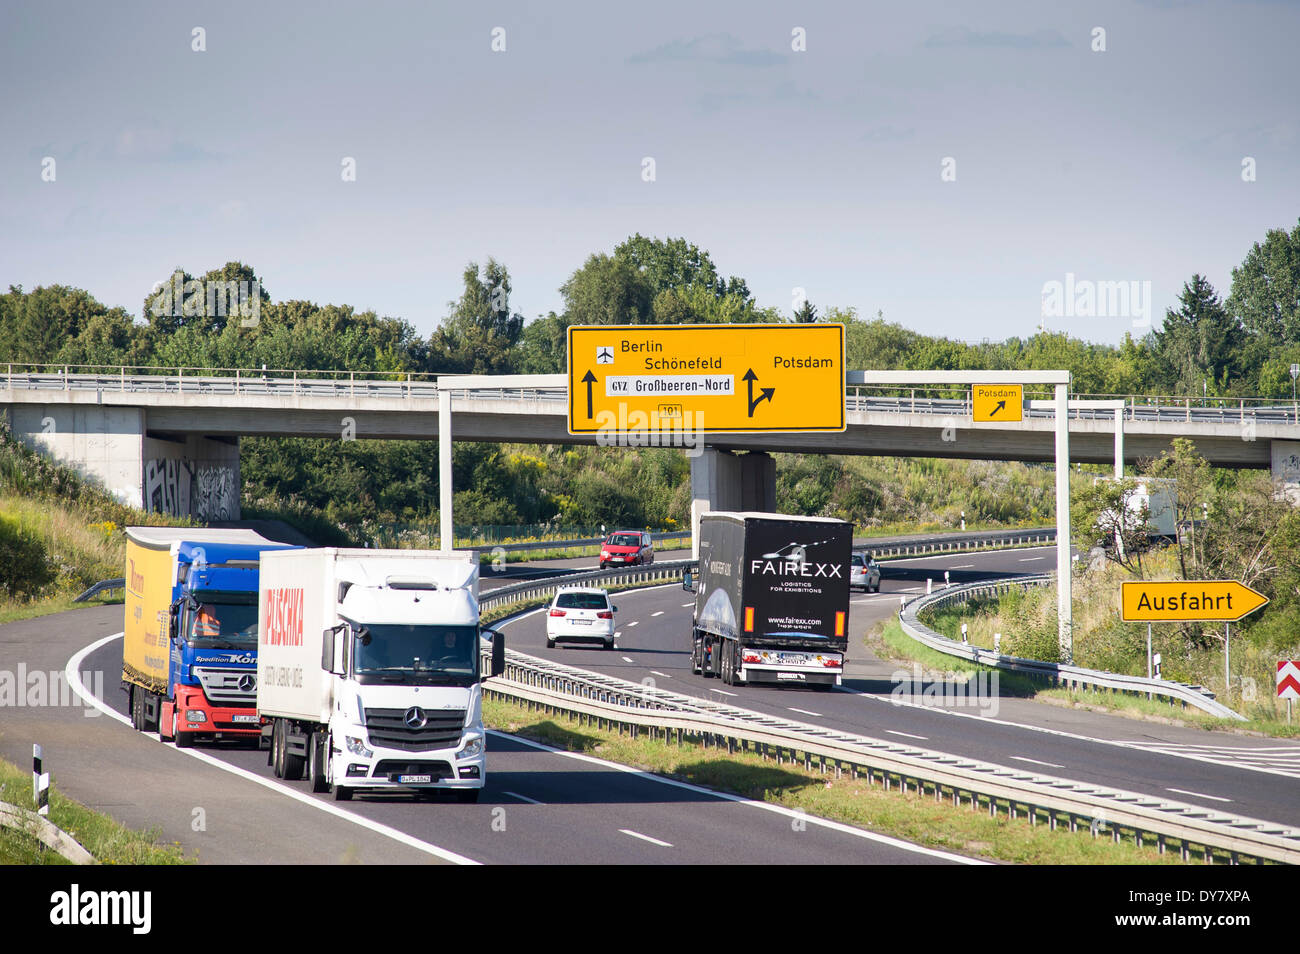 Truck traffic on a four-lane national highway, Germany - Stock Image